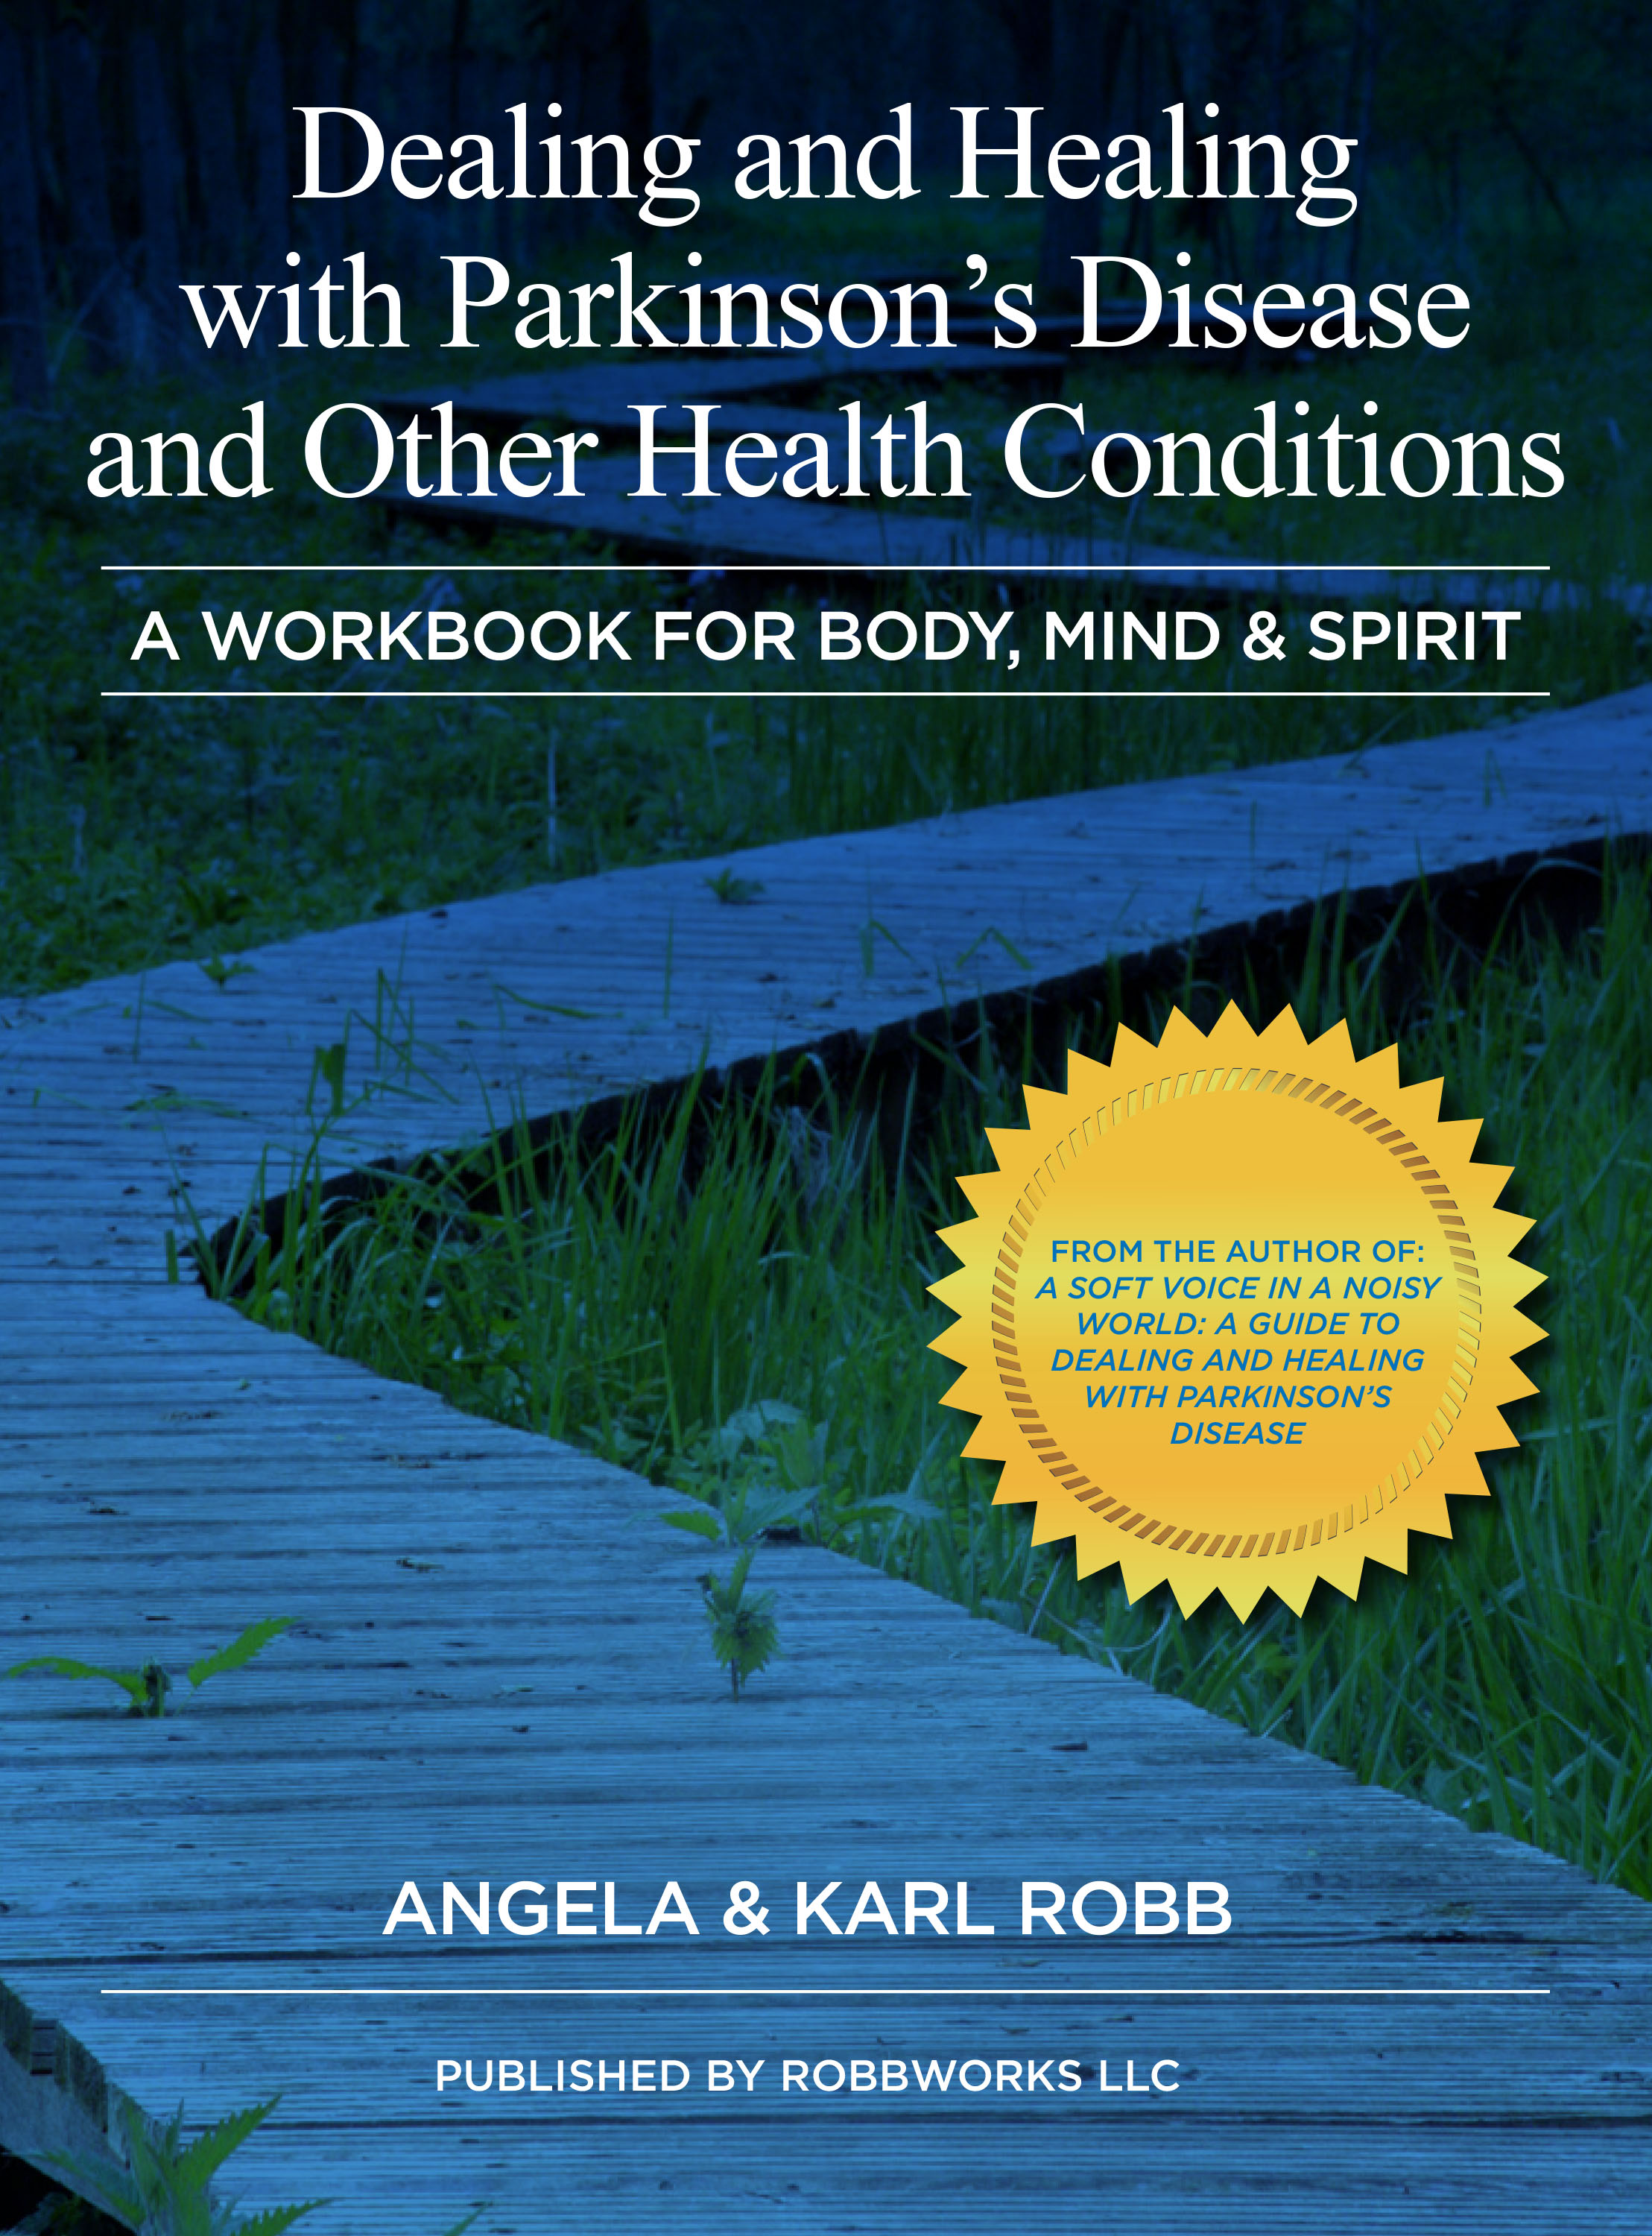 Dealing and Healing with Parkinson's Disease and Other Health Conditions: A Workbook for Body, Mind, and Spirit